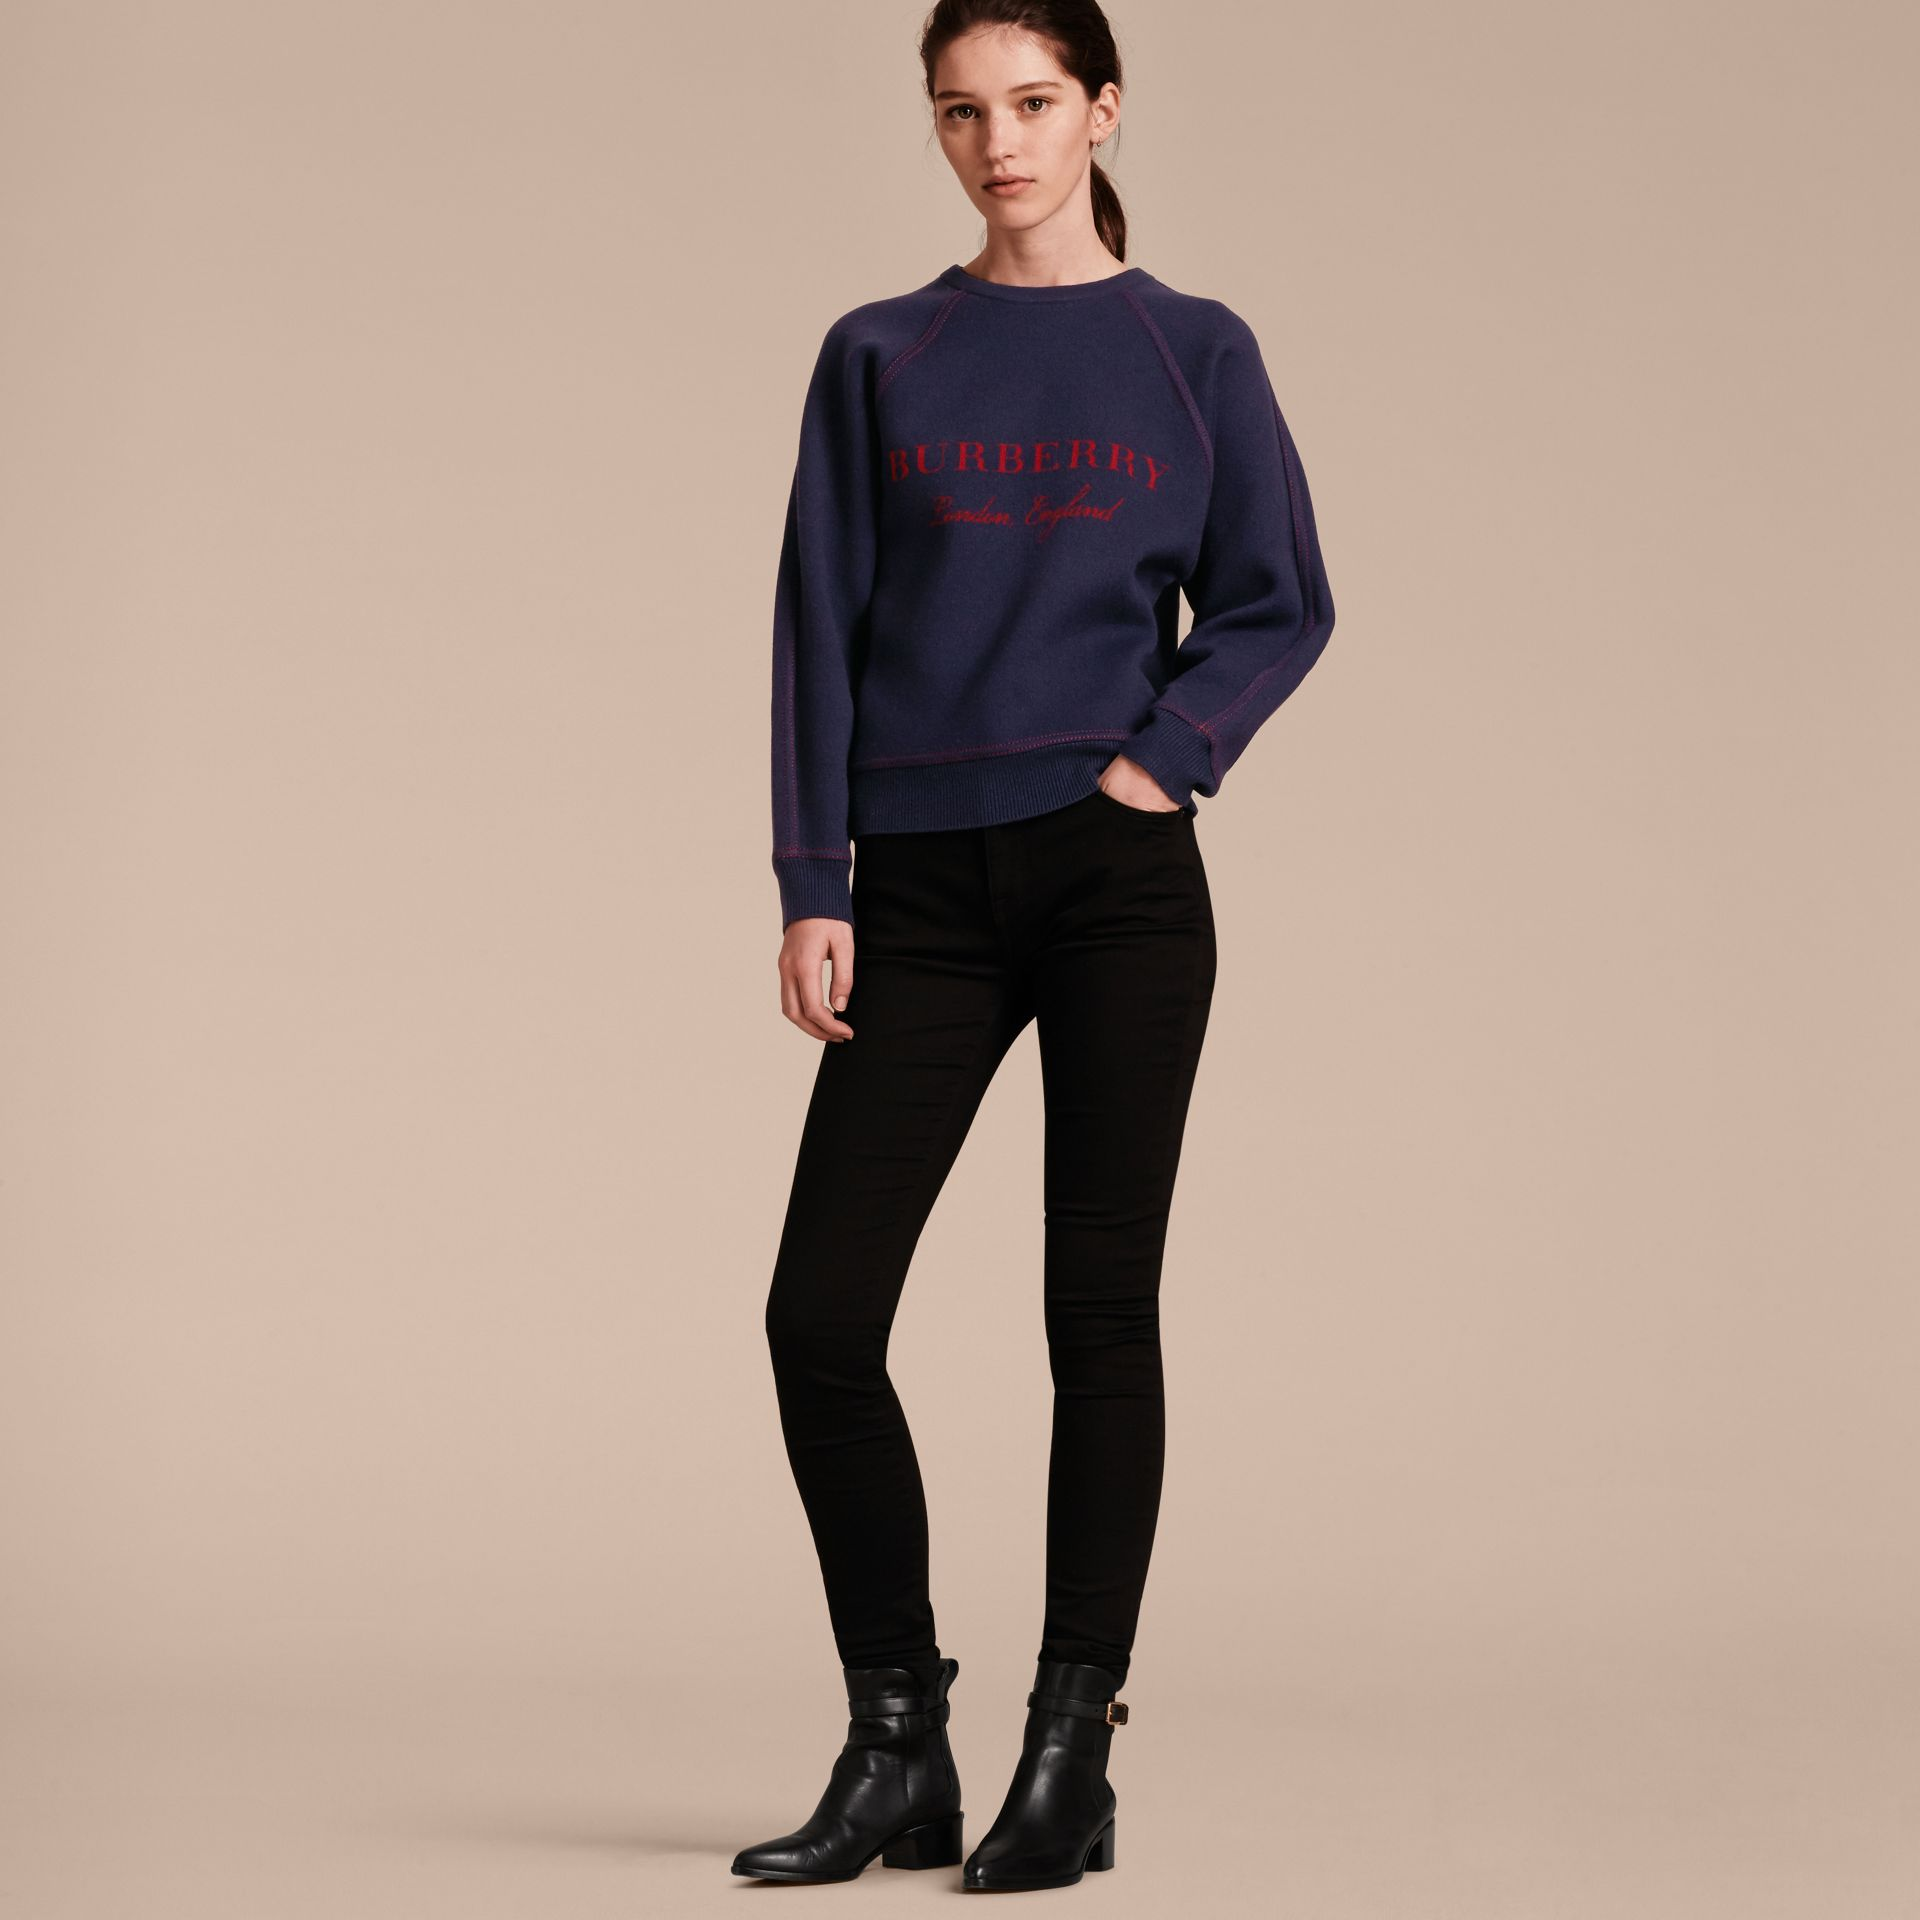 Topstitch Detail Wool Cashmere Blend Sweater in Navy - Women | Burberry - gallery image 6